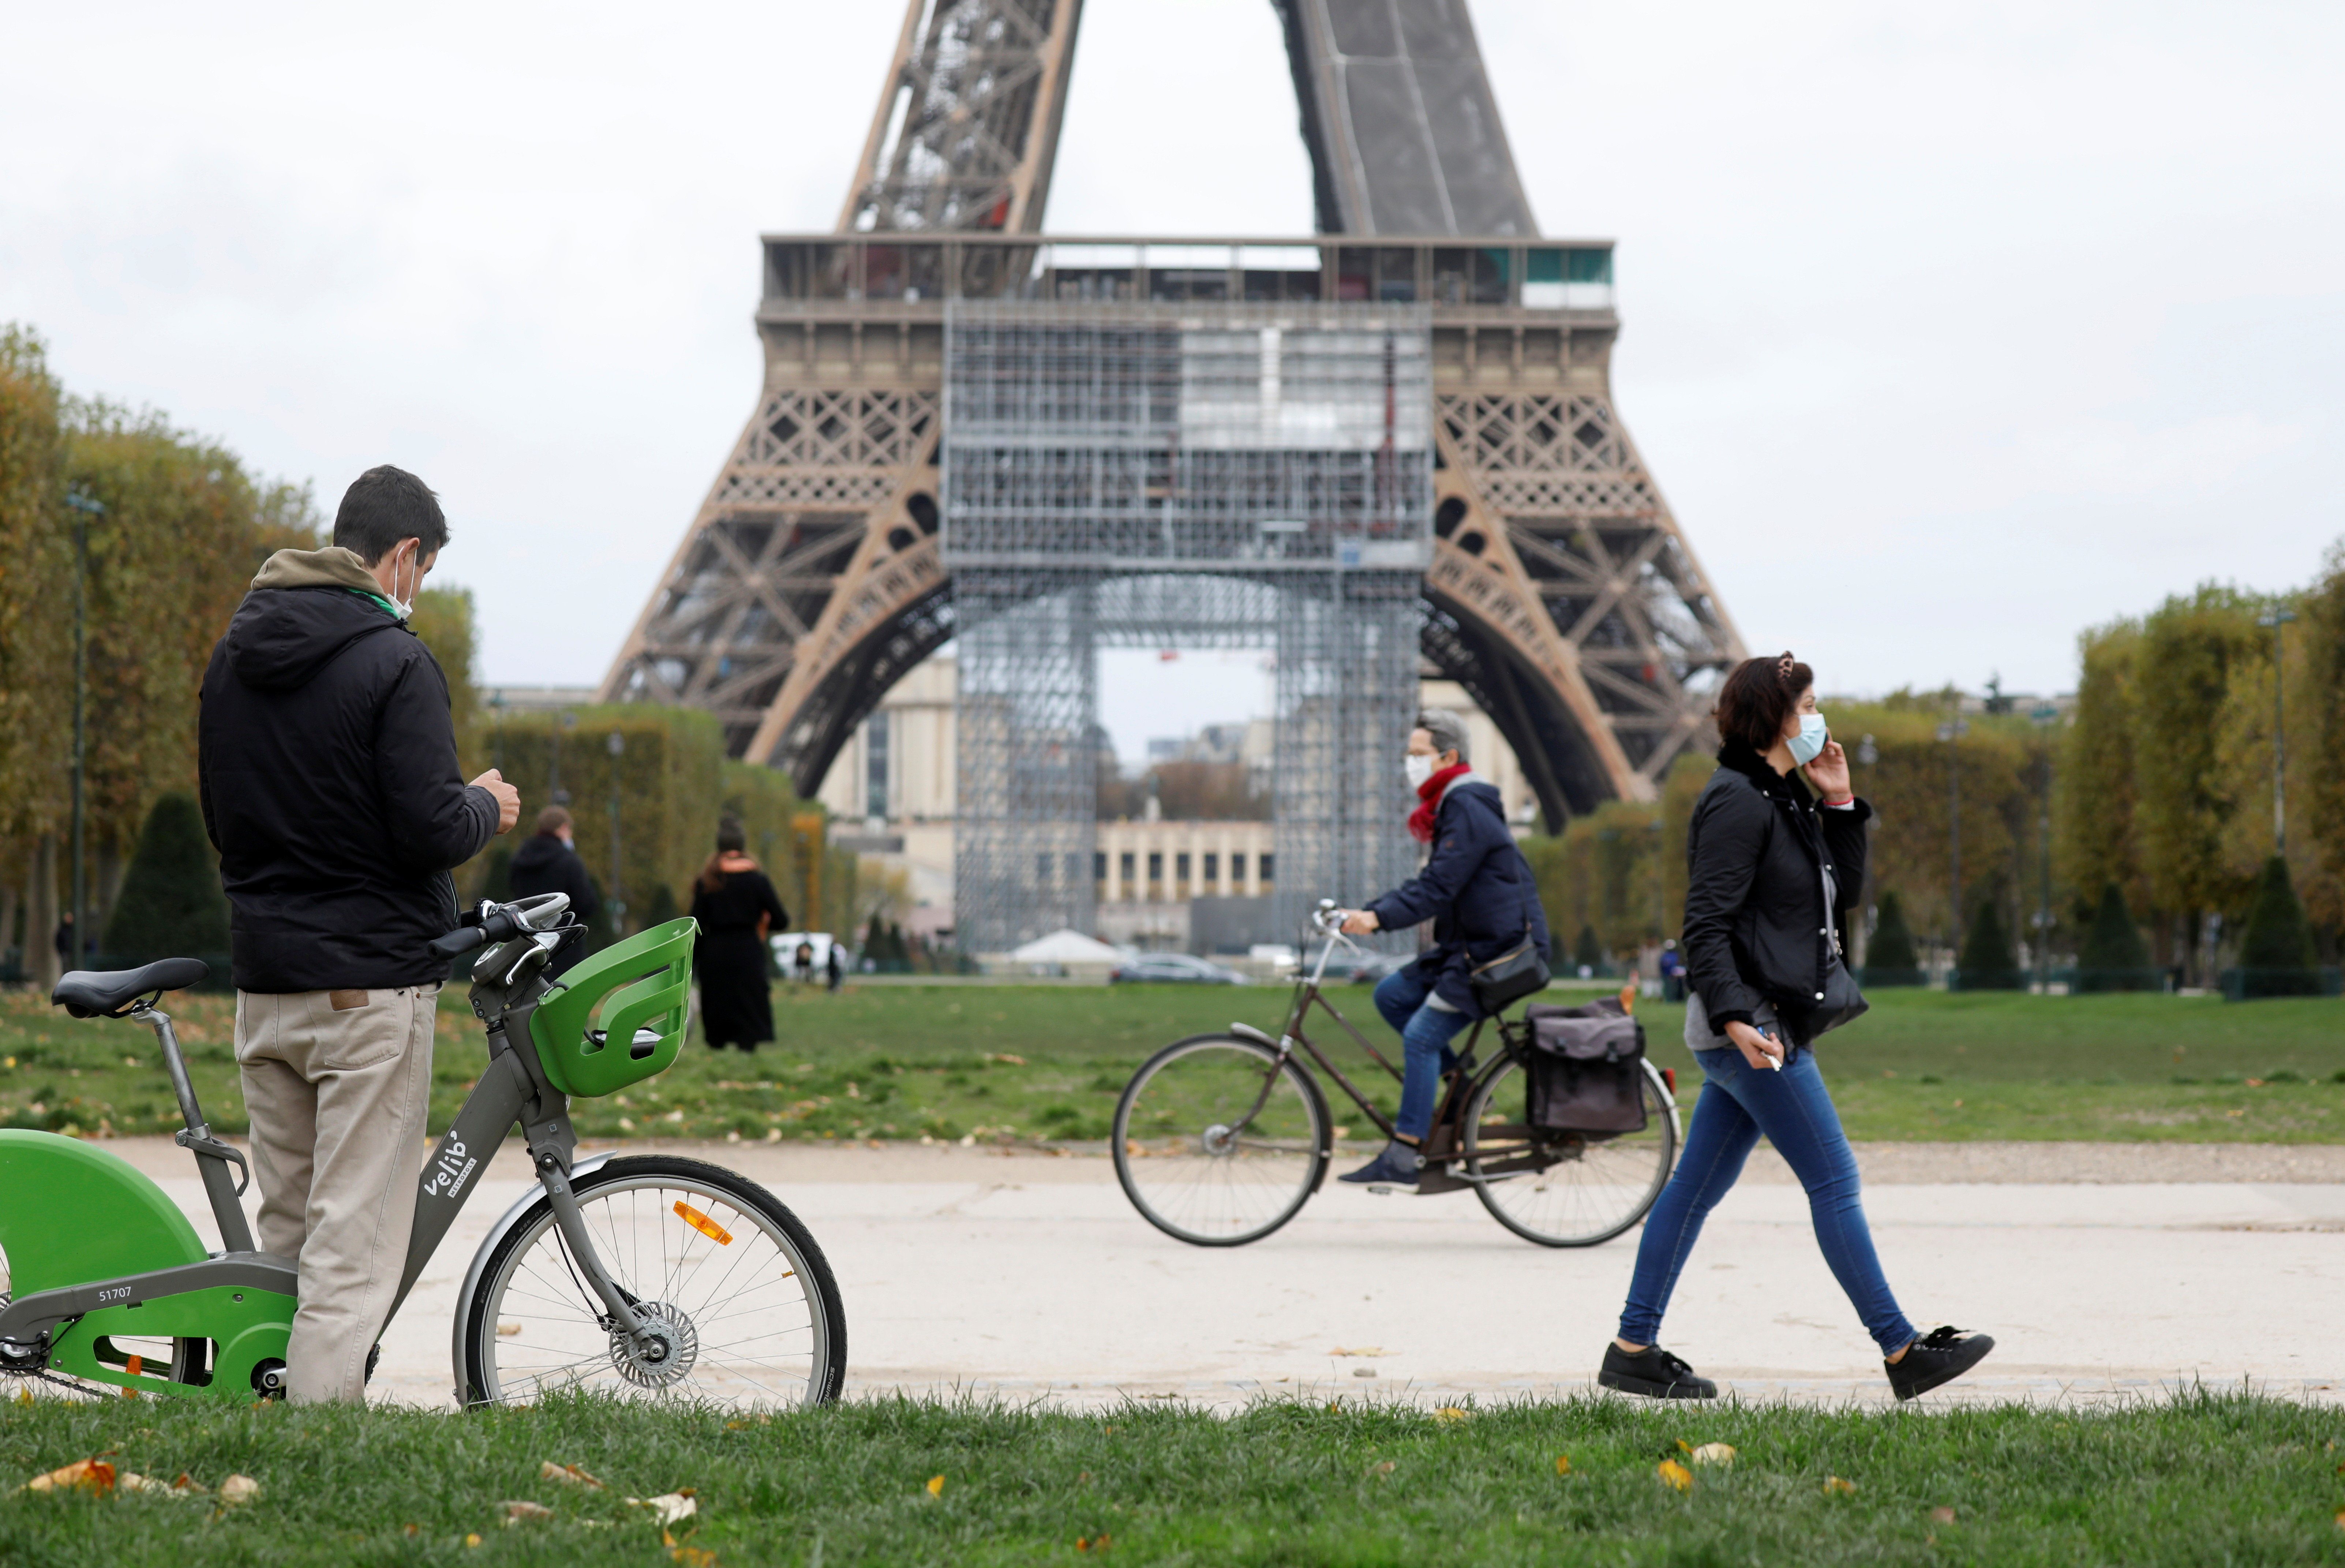 People pass by the Eiffel Tower before the national lockdown introduced as part of the new COVID-19 measures to fight a second wave of the coronavirus disease, in Paris, France, October 29, 2020.   REUTERS/Charles Platiau - RC2ESJ9E8LAO